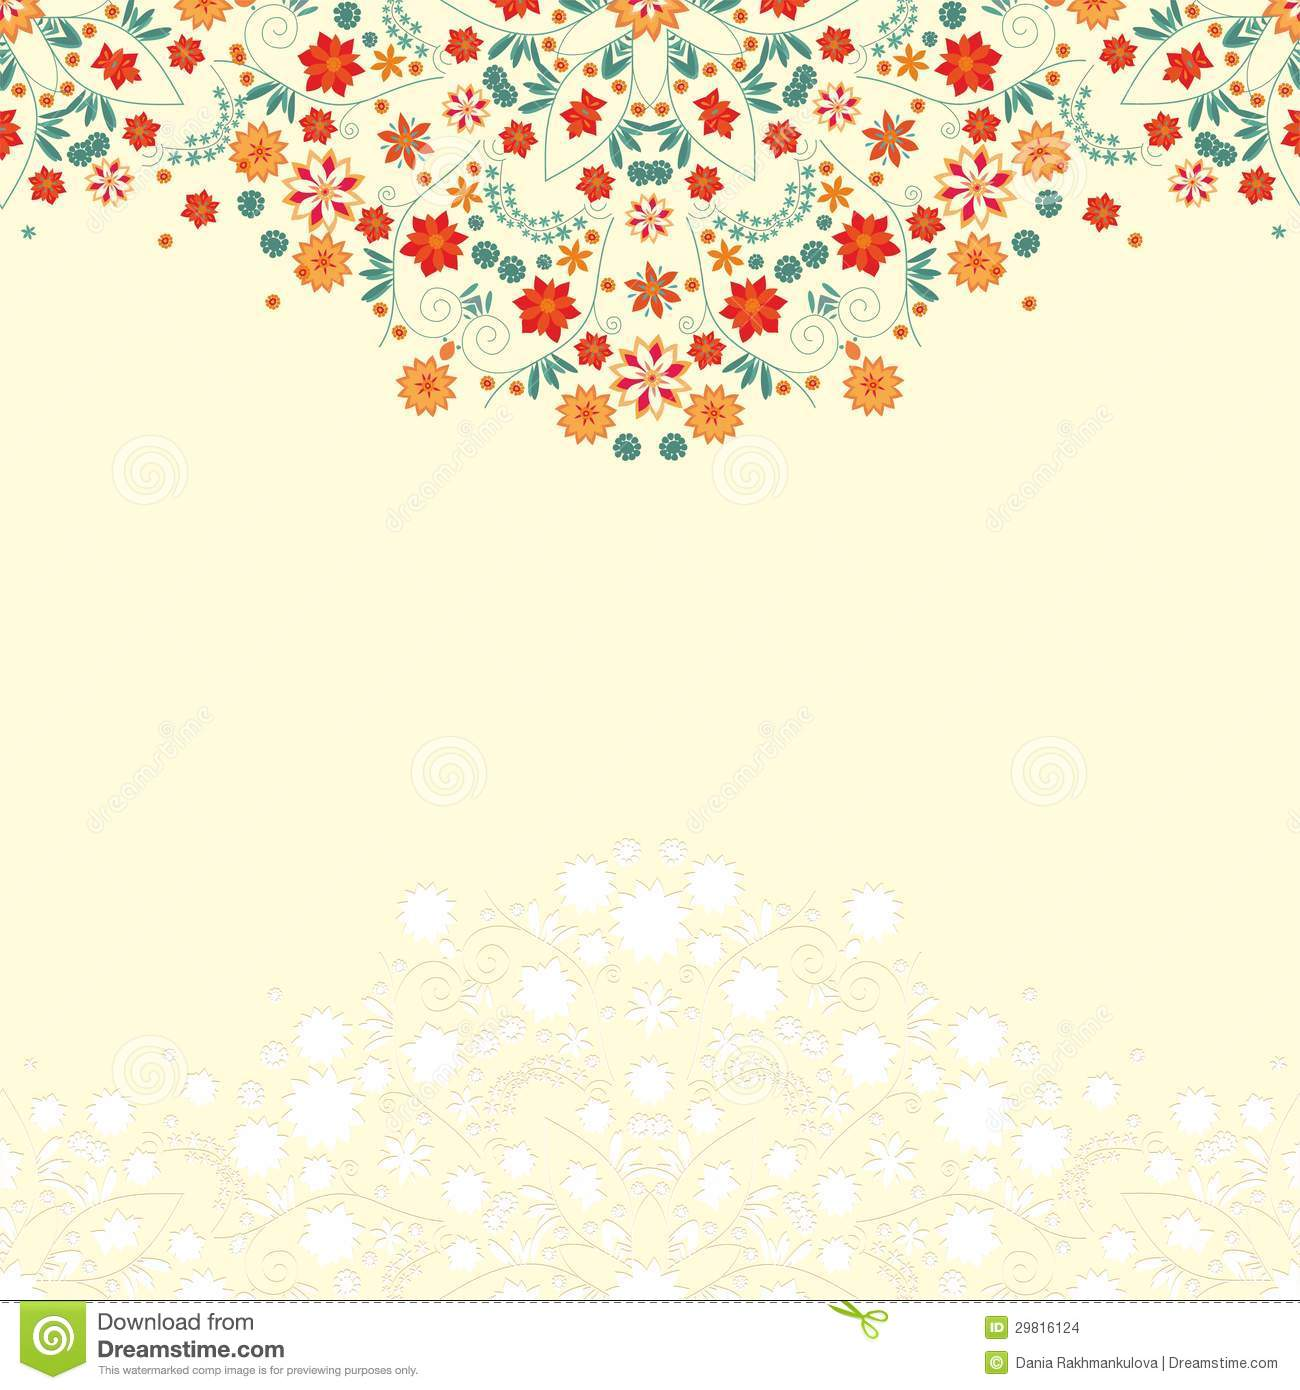 Cute Scrapbook Paper Patterns Floral pattern for scrapbook